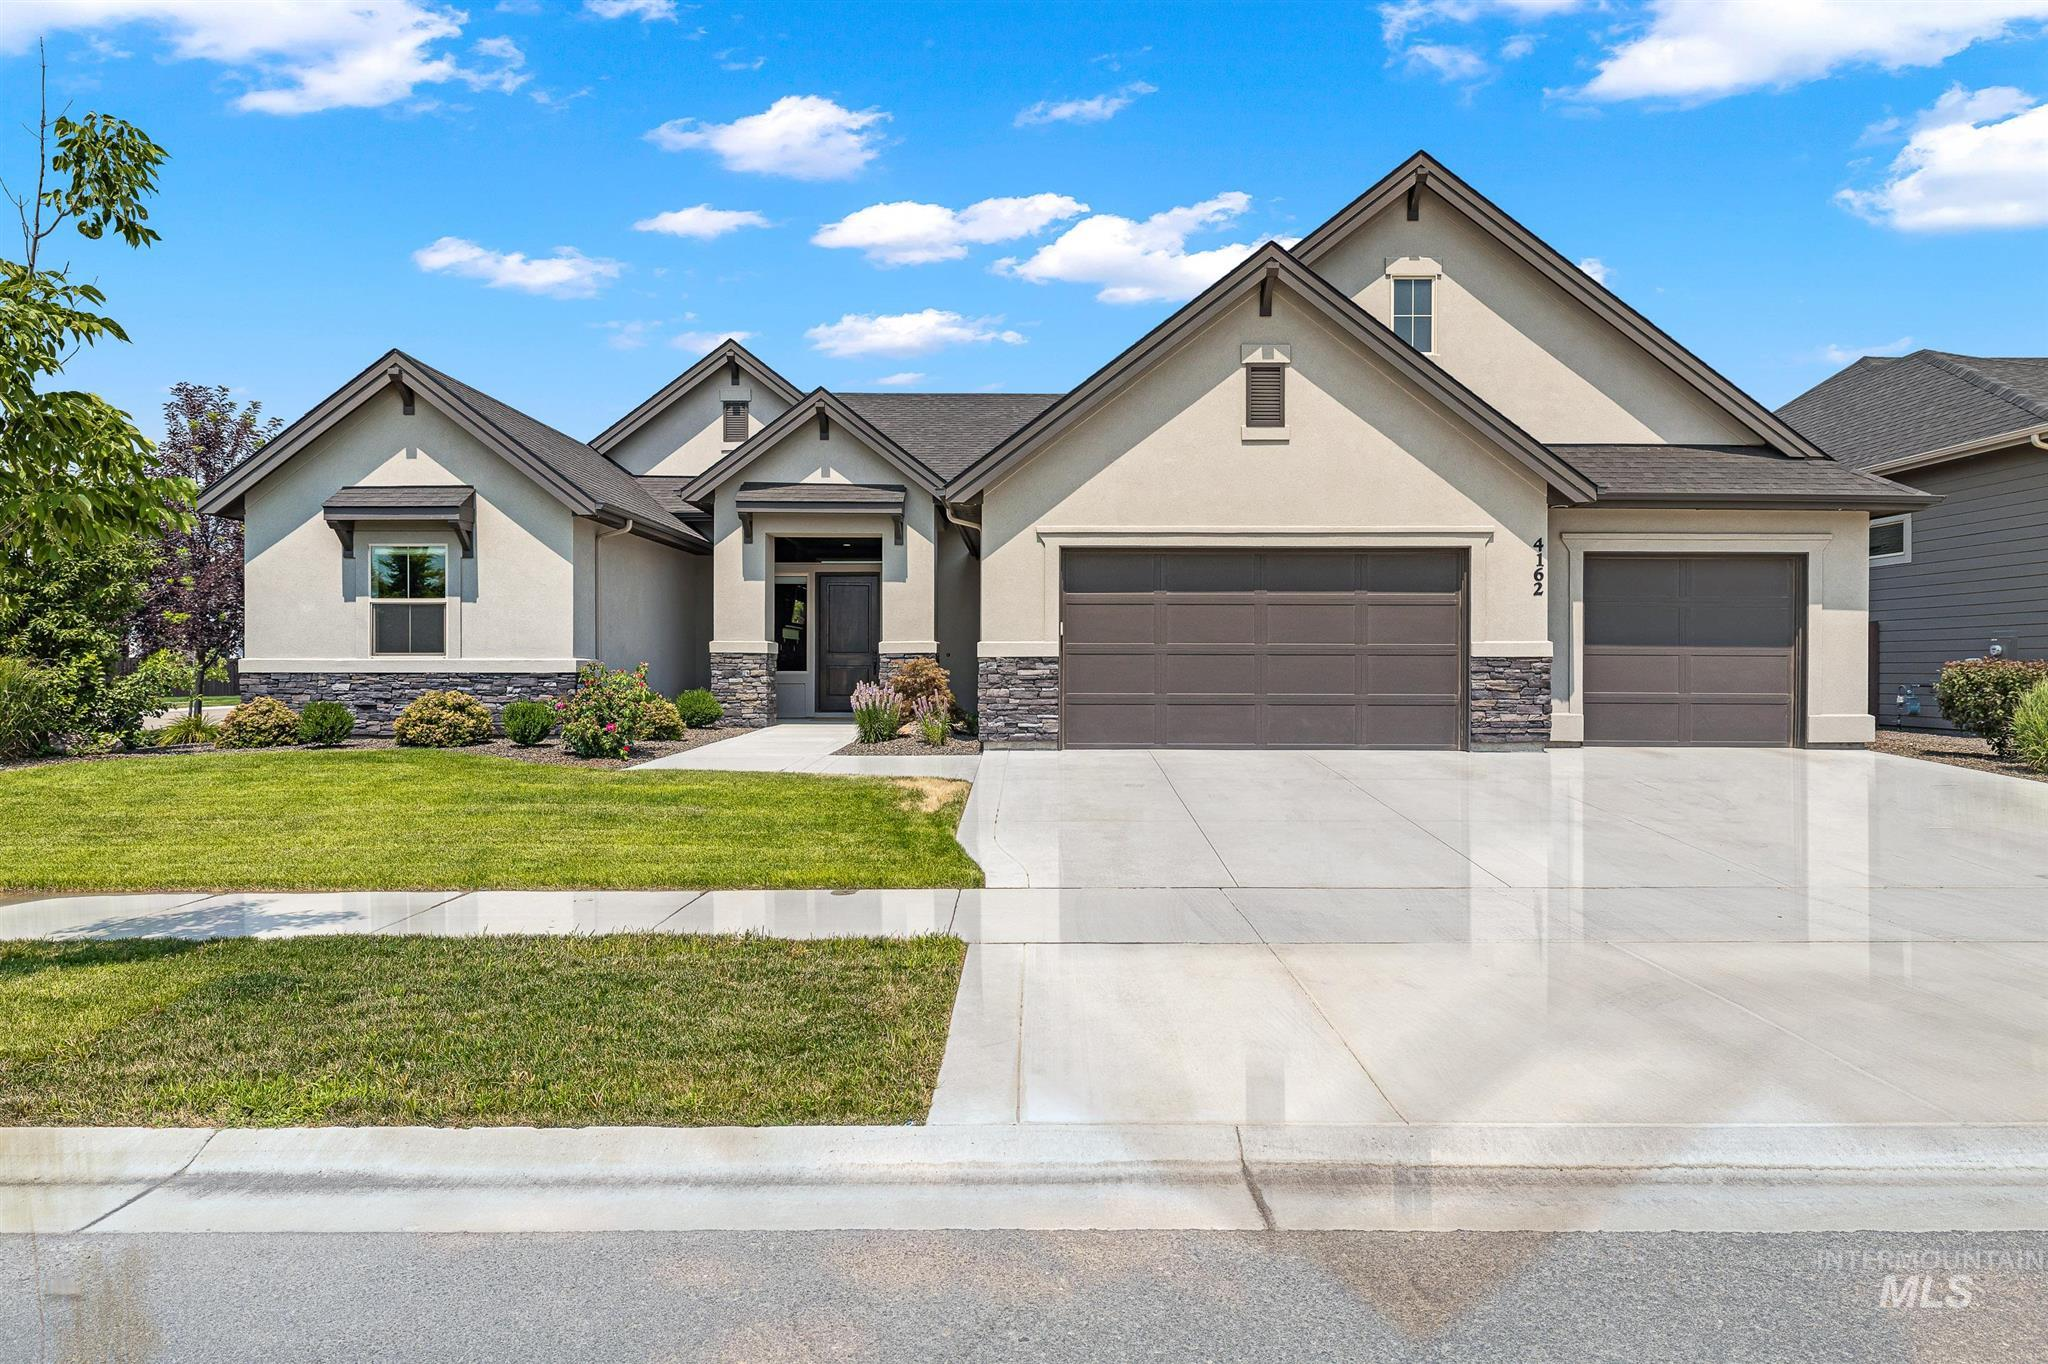 """Stunning single level design with all the bells & whistles you've come to expect from James Clyde Homes: Extensive hardwood, amazing stainless steel Thermador appliances, custom built kitchen cabinets, breathtaking trim work & detail that only a true Craftsman can deliver. Check out the 3+ car garage that includes epoxy flooring! """"Discover what """"no compromises"""" feels like. Walking distance of the community pool, park, close to Schools, Shopping and easy Freeway Access. Everything is done! BTVAI"""